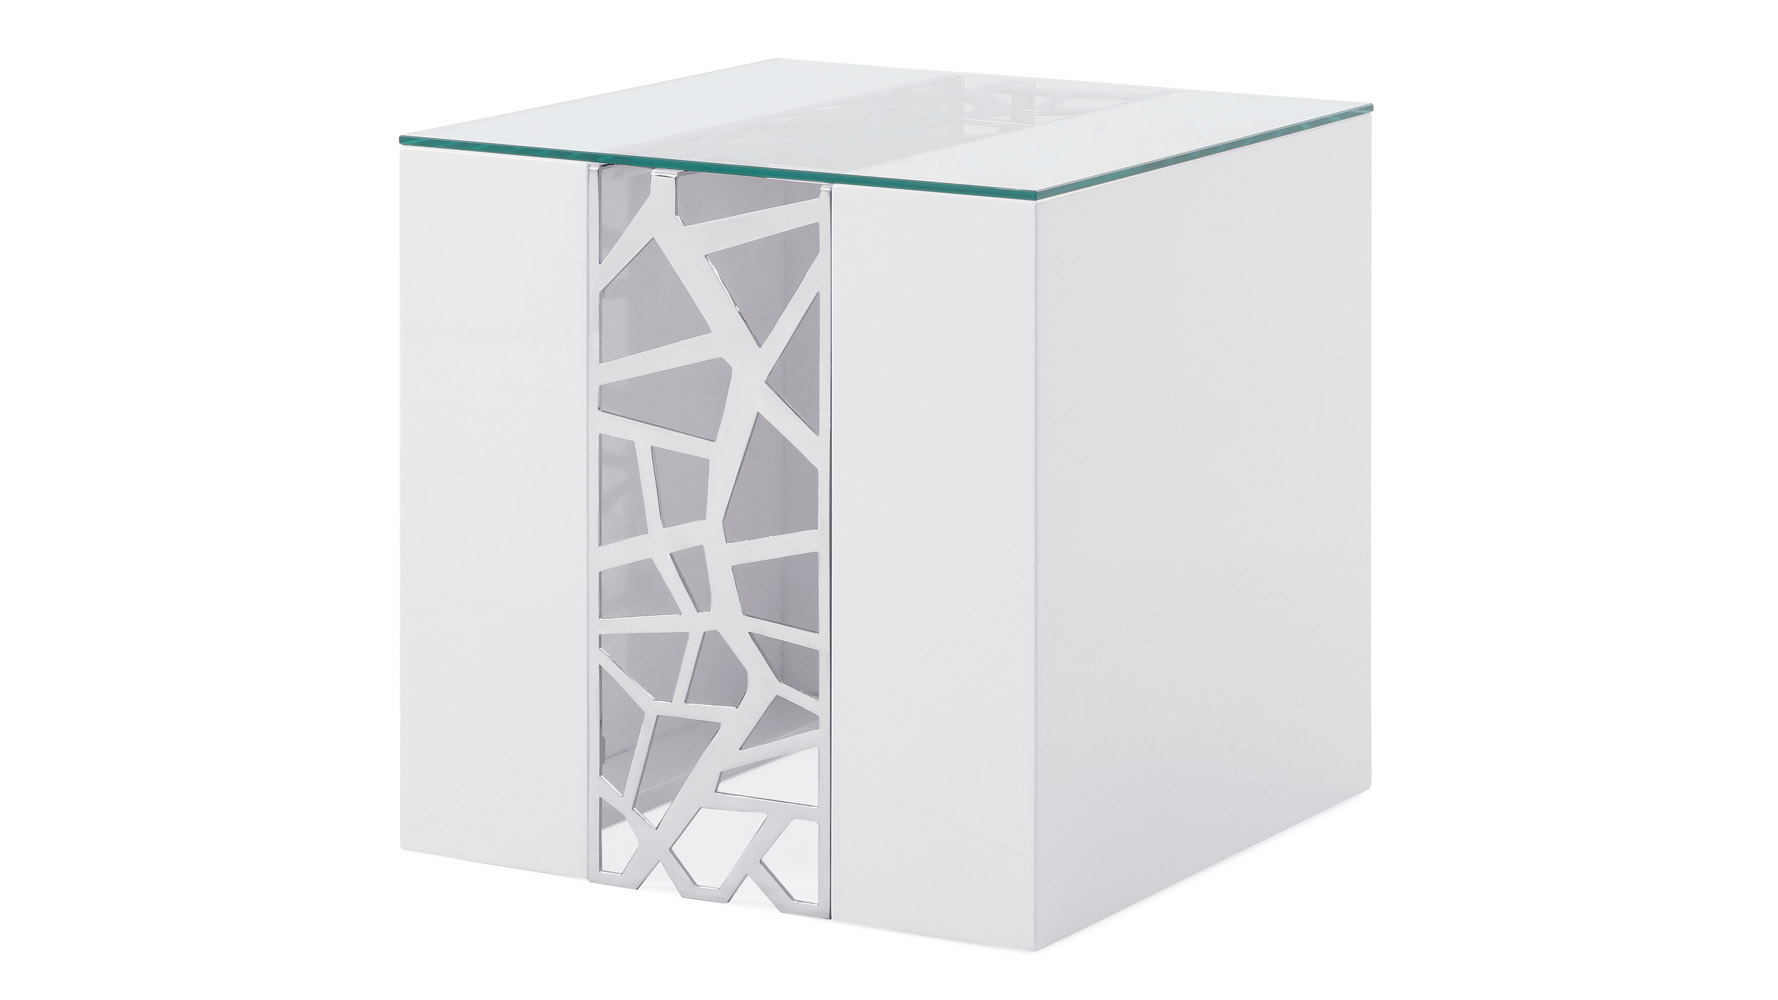 products wood lacquer material accent tables living liera end table white black zuri furniture large patio cover live edge inch high beach themed bedroom dressers grohe rainshower